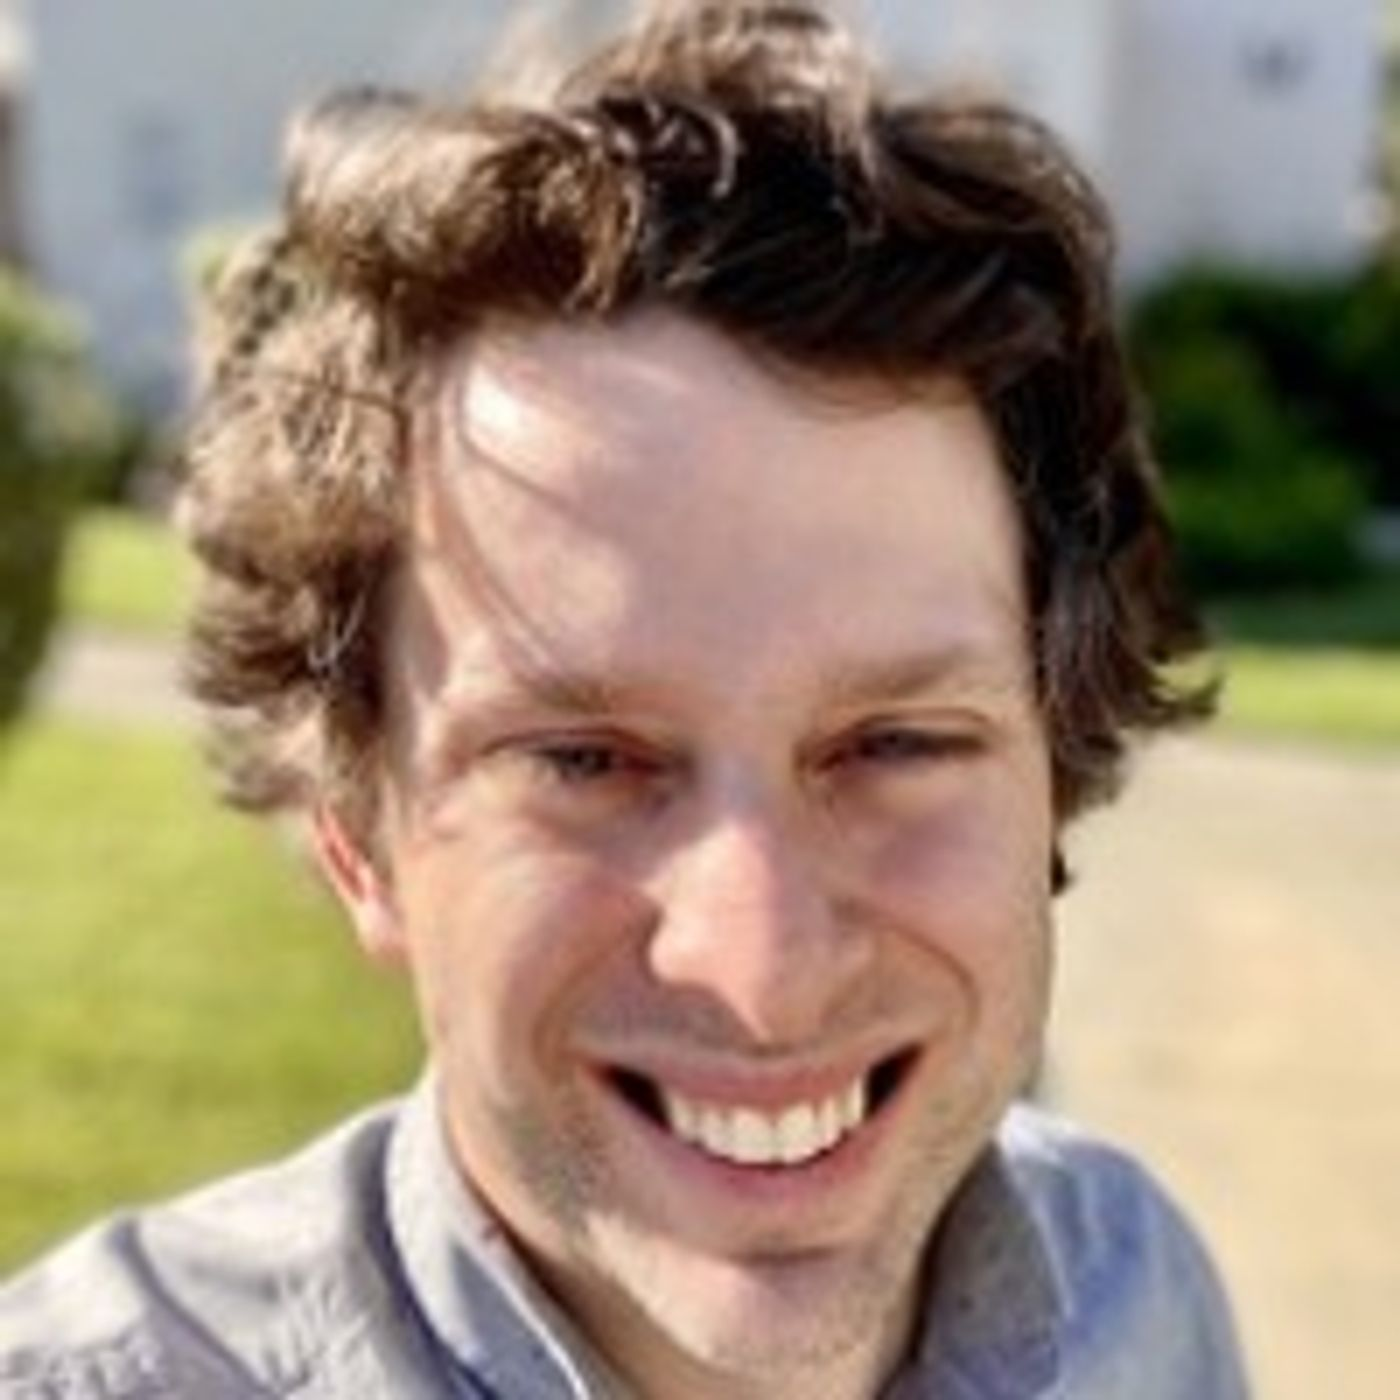 112 - Code, Food, and Philosophy with Collin Donnell